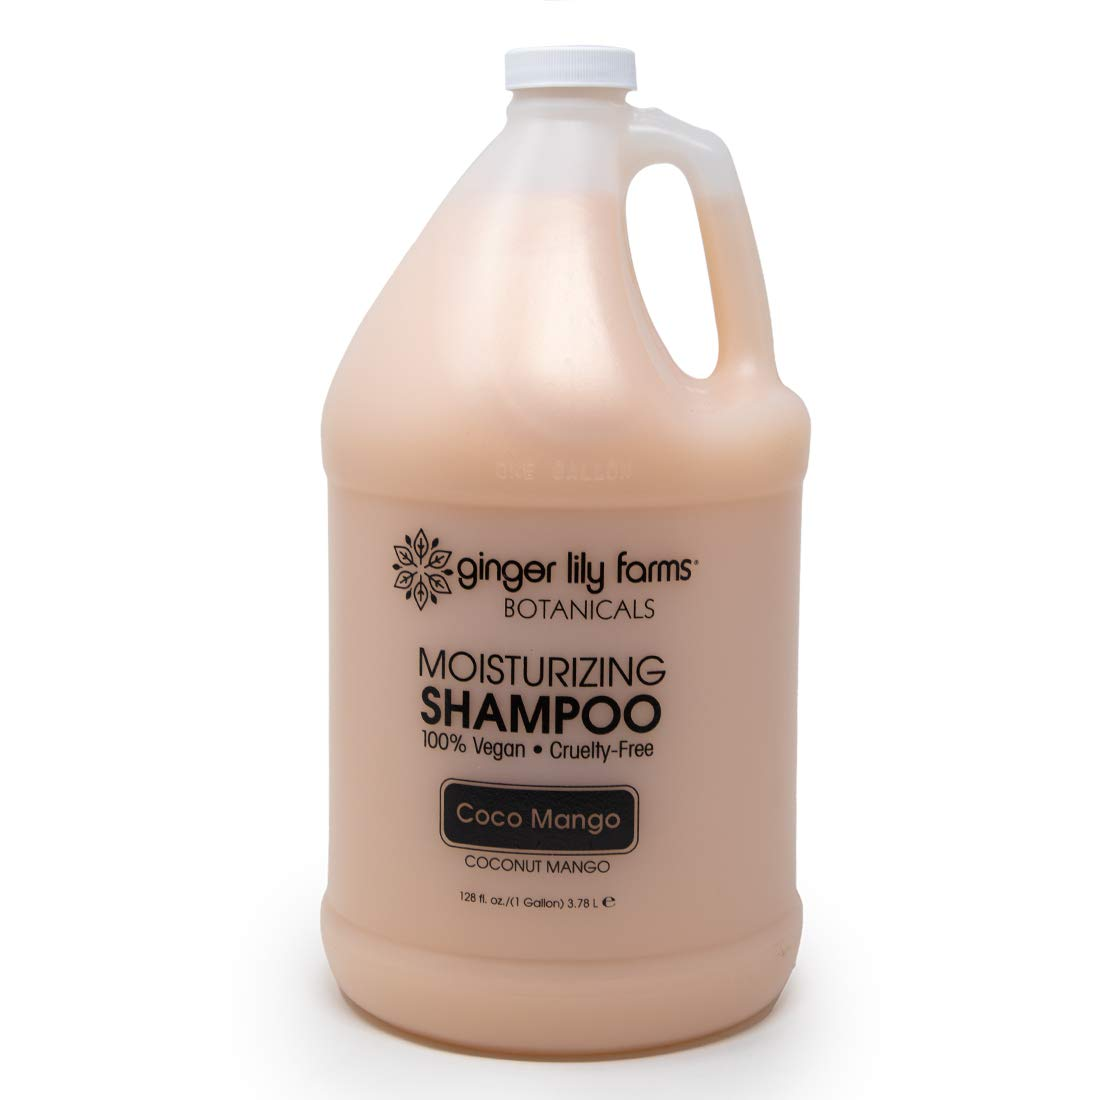 Ginger Lily Farms Botanicals Coco Mango Moisturizing Shampoo, 100% Vegan, Paraben, Sulfate, Phosphate, Gluten and Cruelty-Free, 1 Gallon